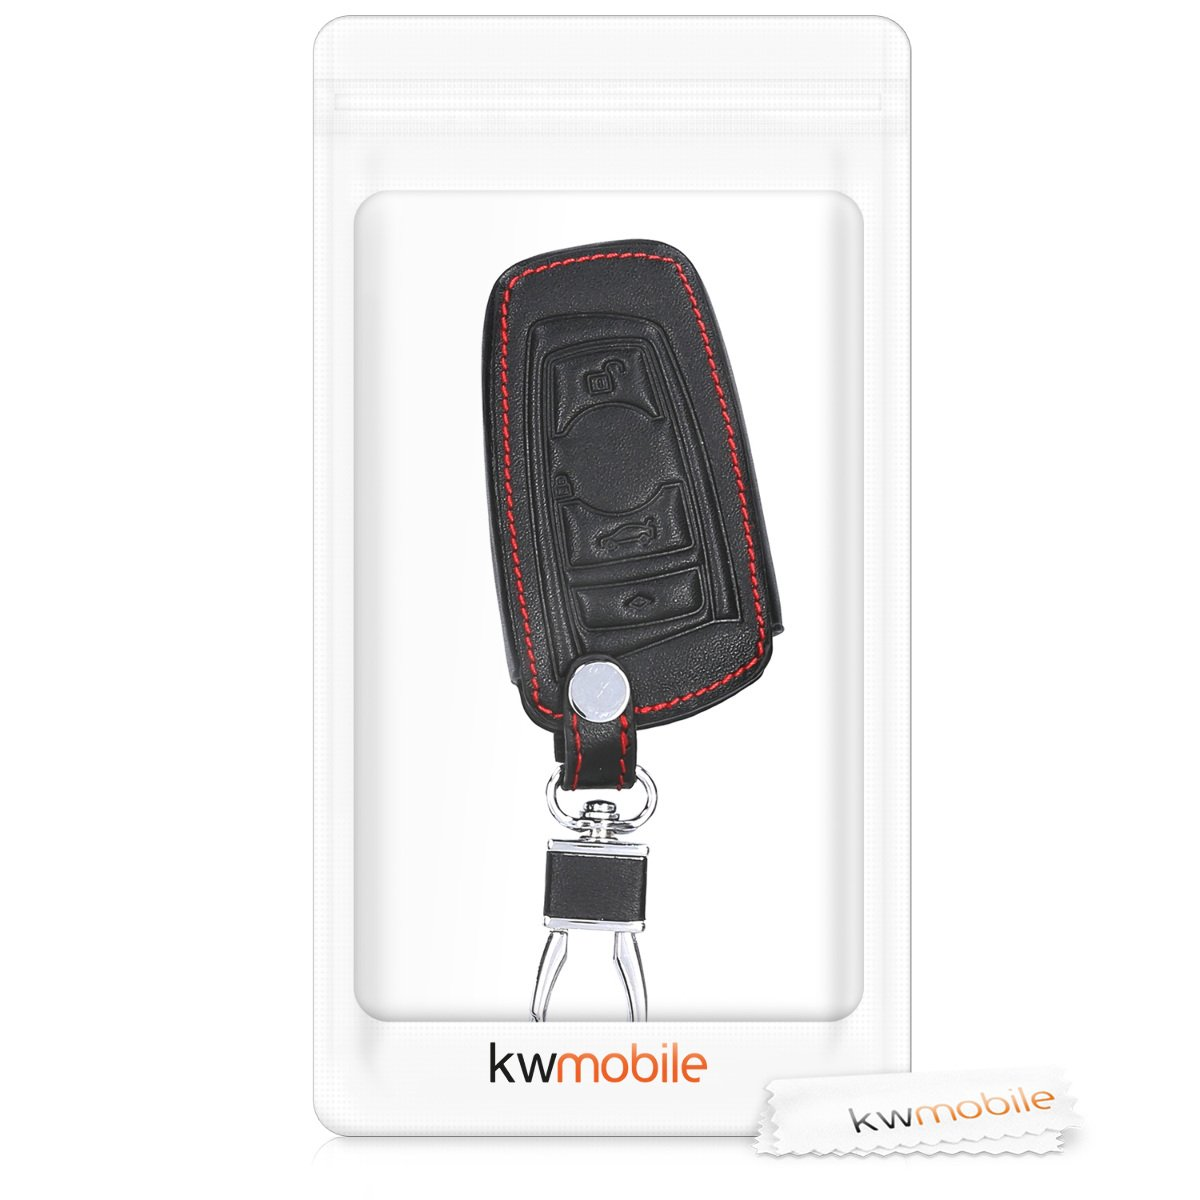 only Keyless Go kwmobile Car Key Cover for BMW Heavy Duty PU Leather Protective Key Fob Cover for BMW 3 Button Remote Control Car Key - Black